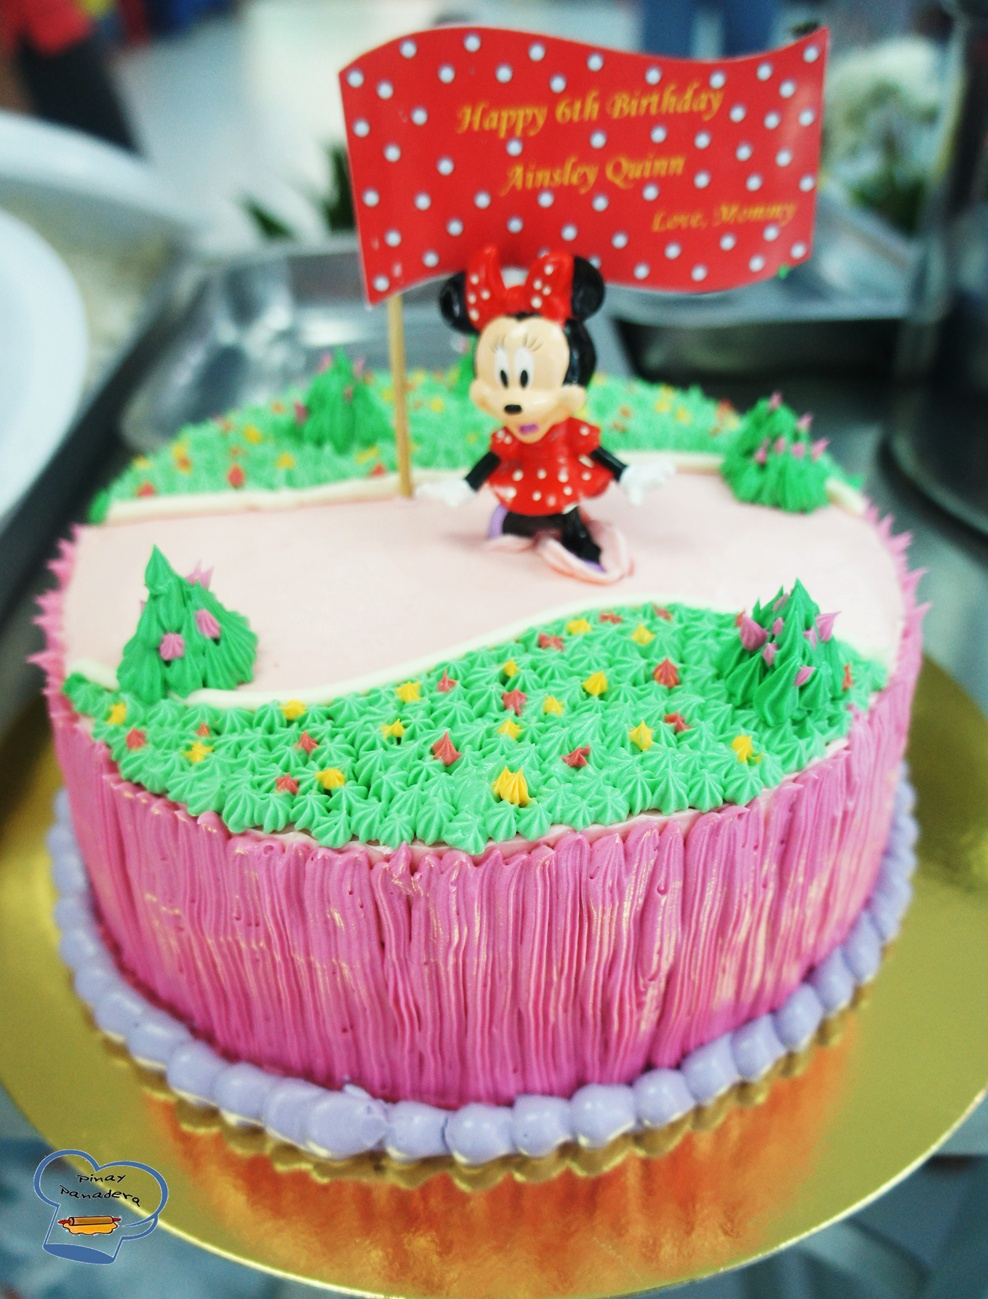 Pinay Panaderas Culinary Adventures Minnie Mouse Cake for Ainsley